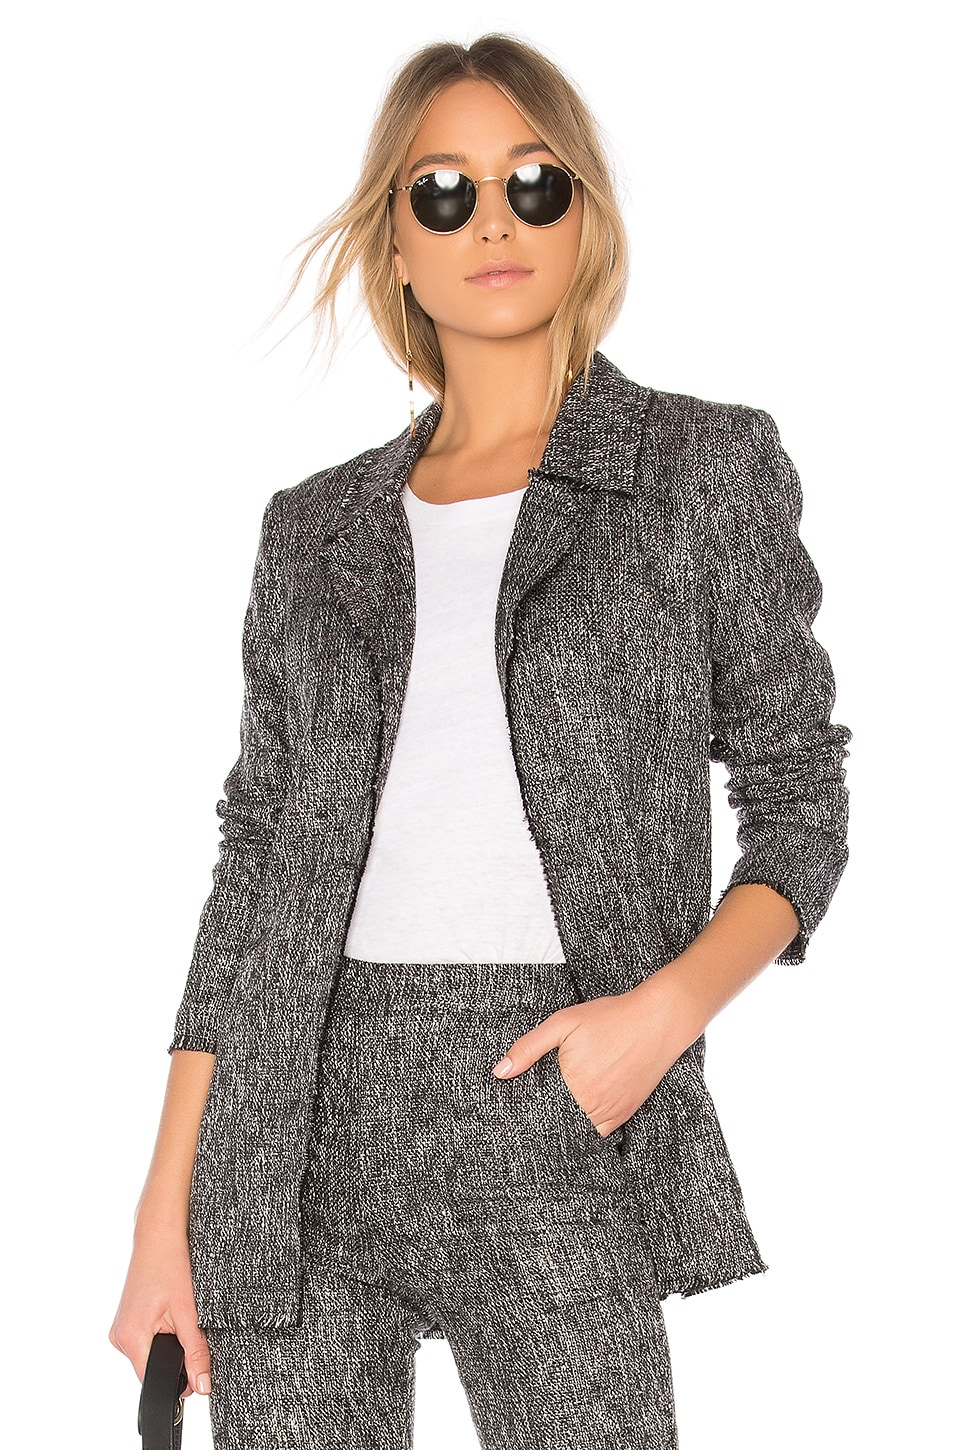 House of Harlow 1960 x REVOLVE Cooper Jacket in Henderson